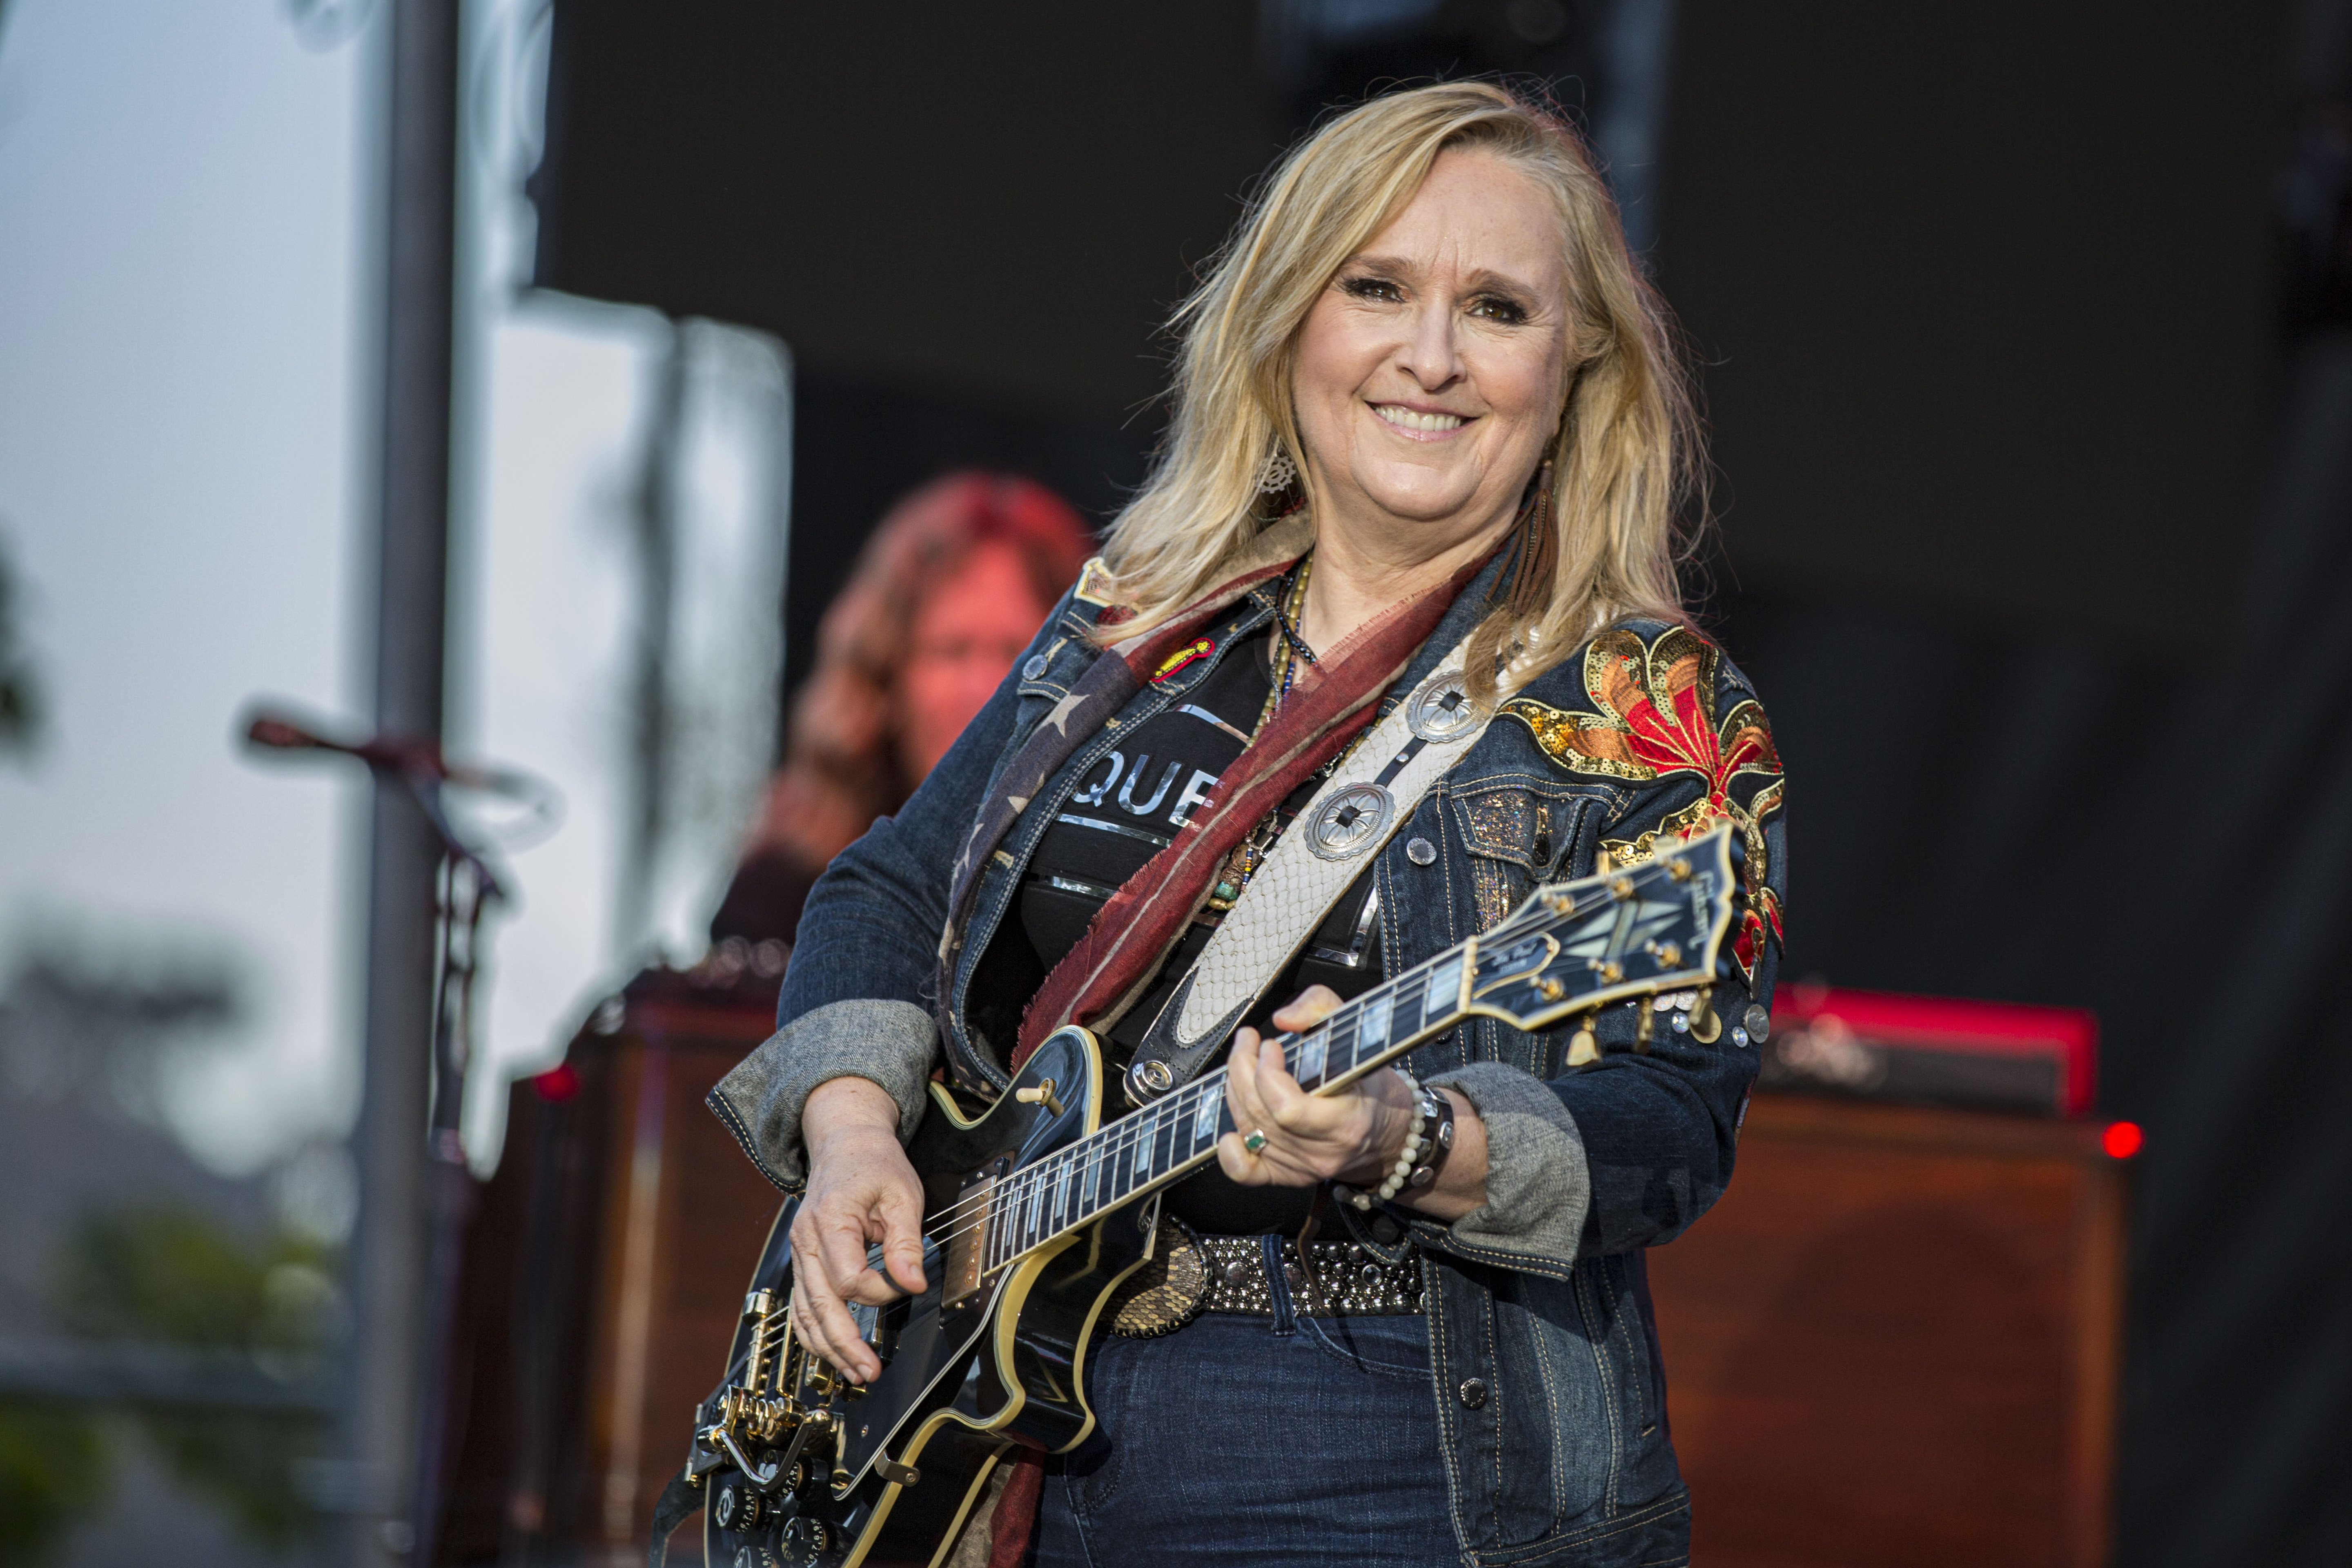 Melissa Etheridge performs on stage at San Diego Pride Festival 2019 on July 14, 2019 in San Diego, California. | Photo by Daniel Knighton/Getty Images